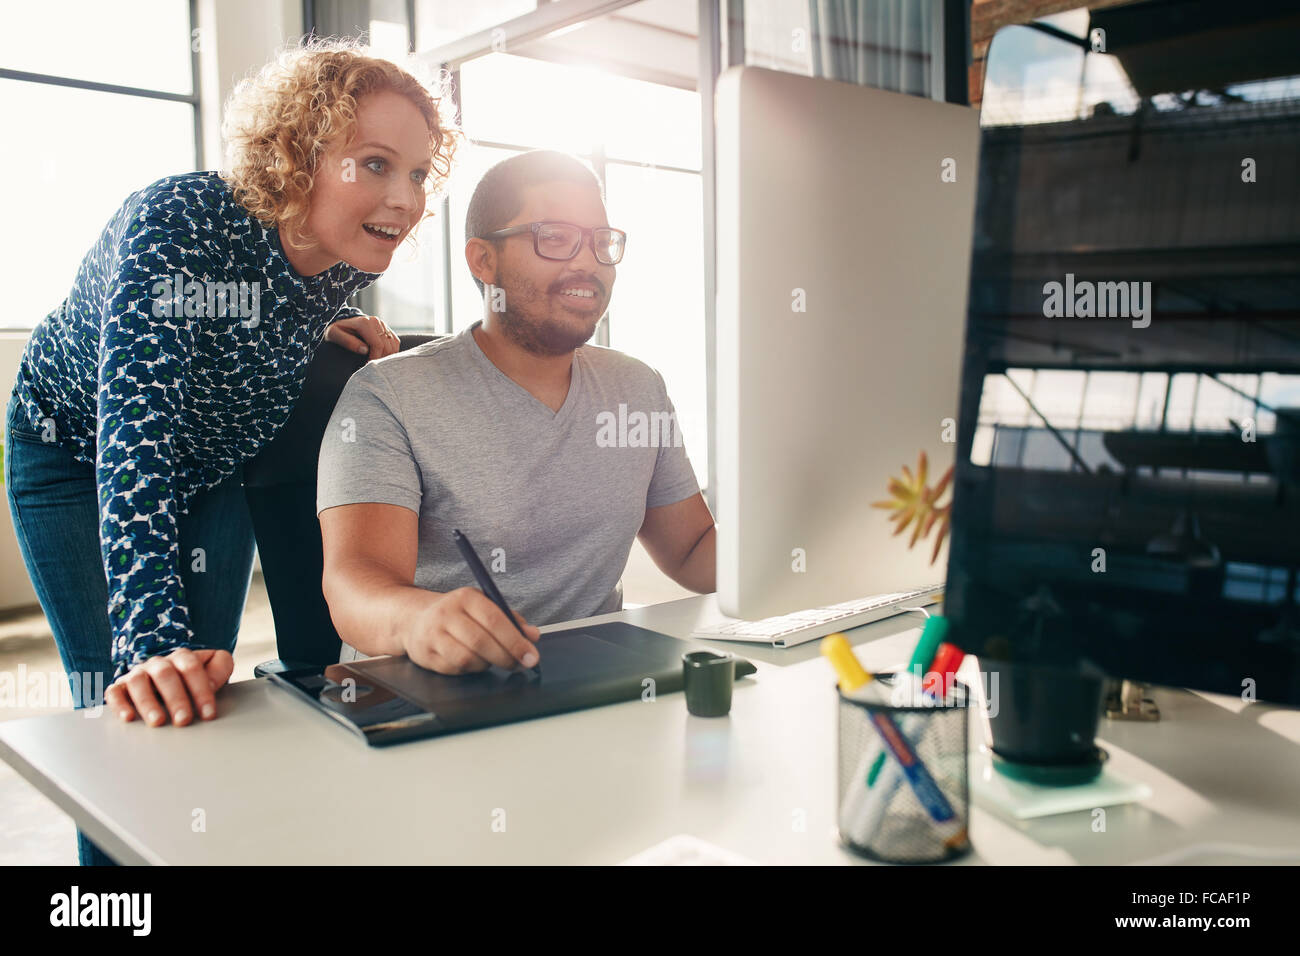 Two young creative people working together on a new project in office. Male and female designer using digital graphic - Stock Image